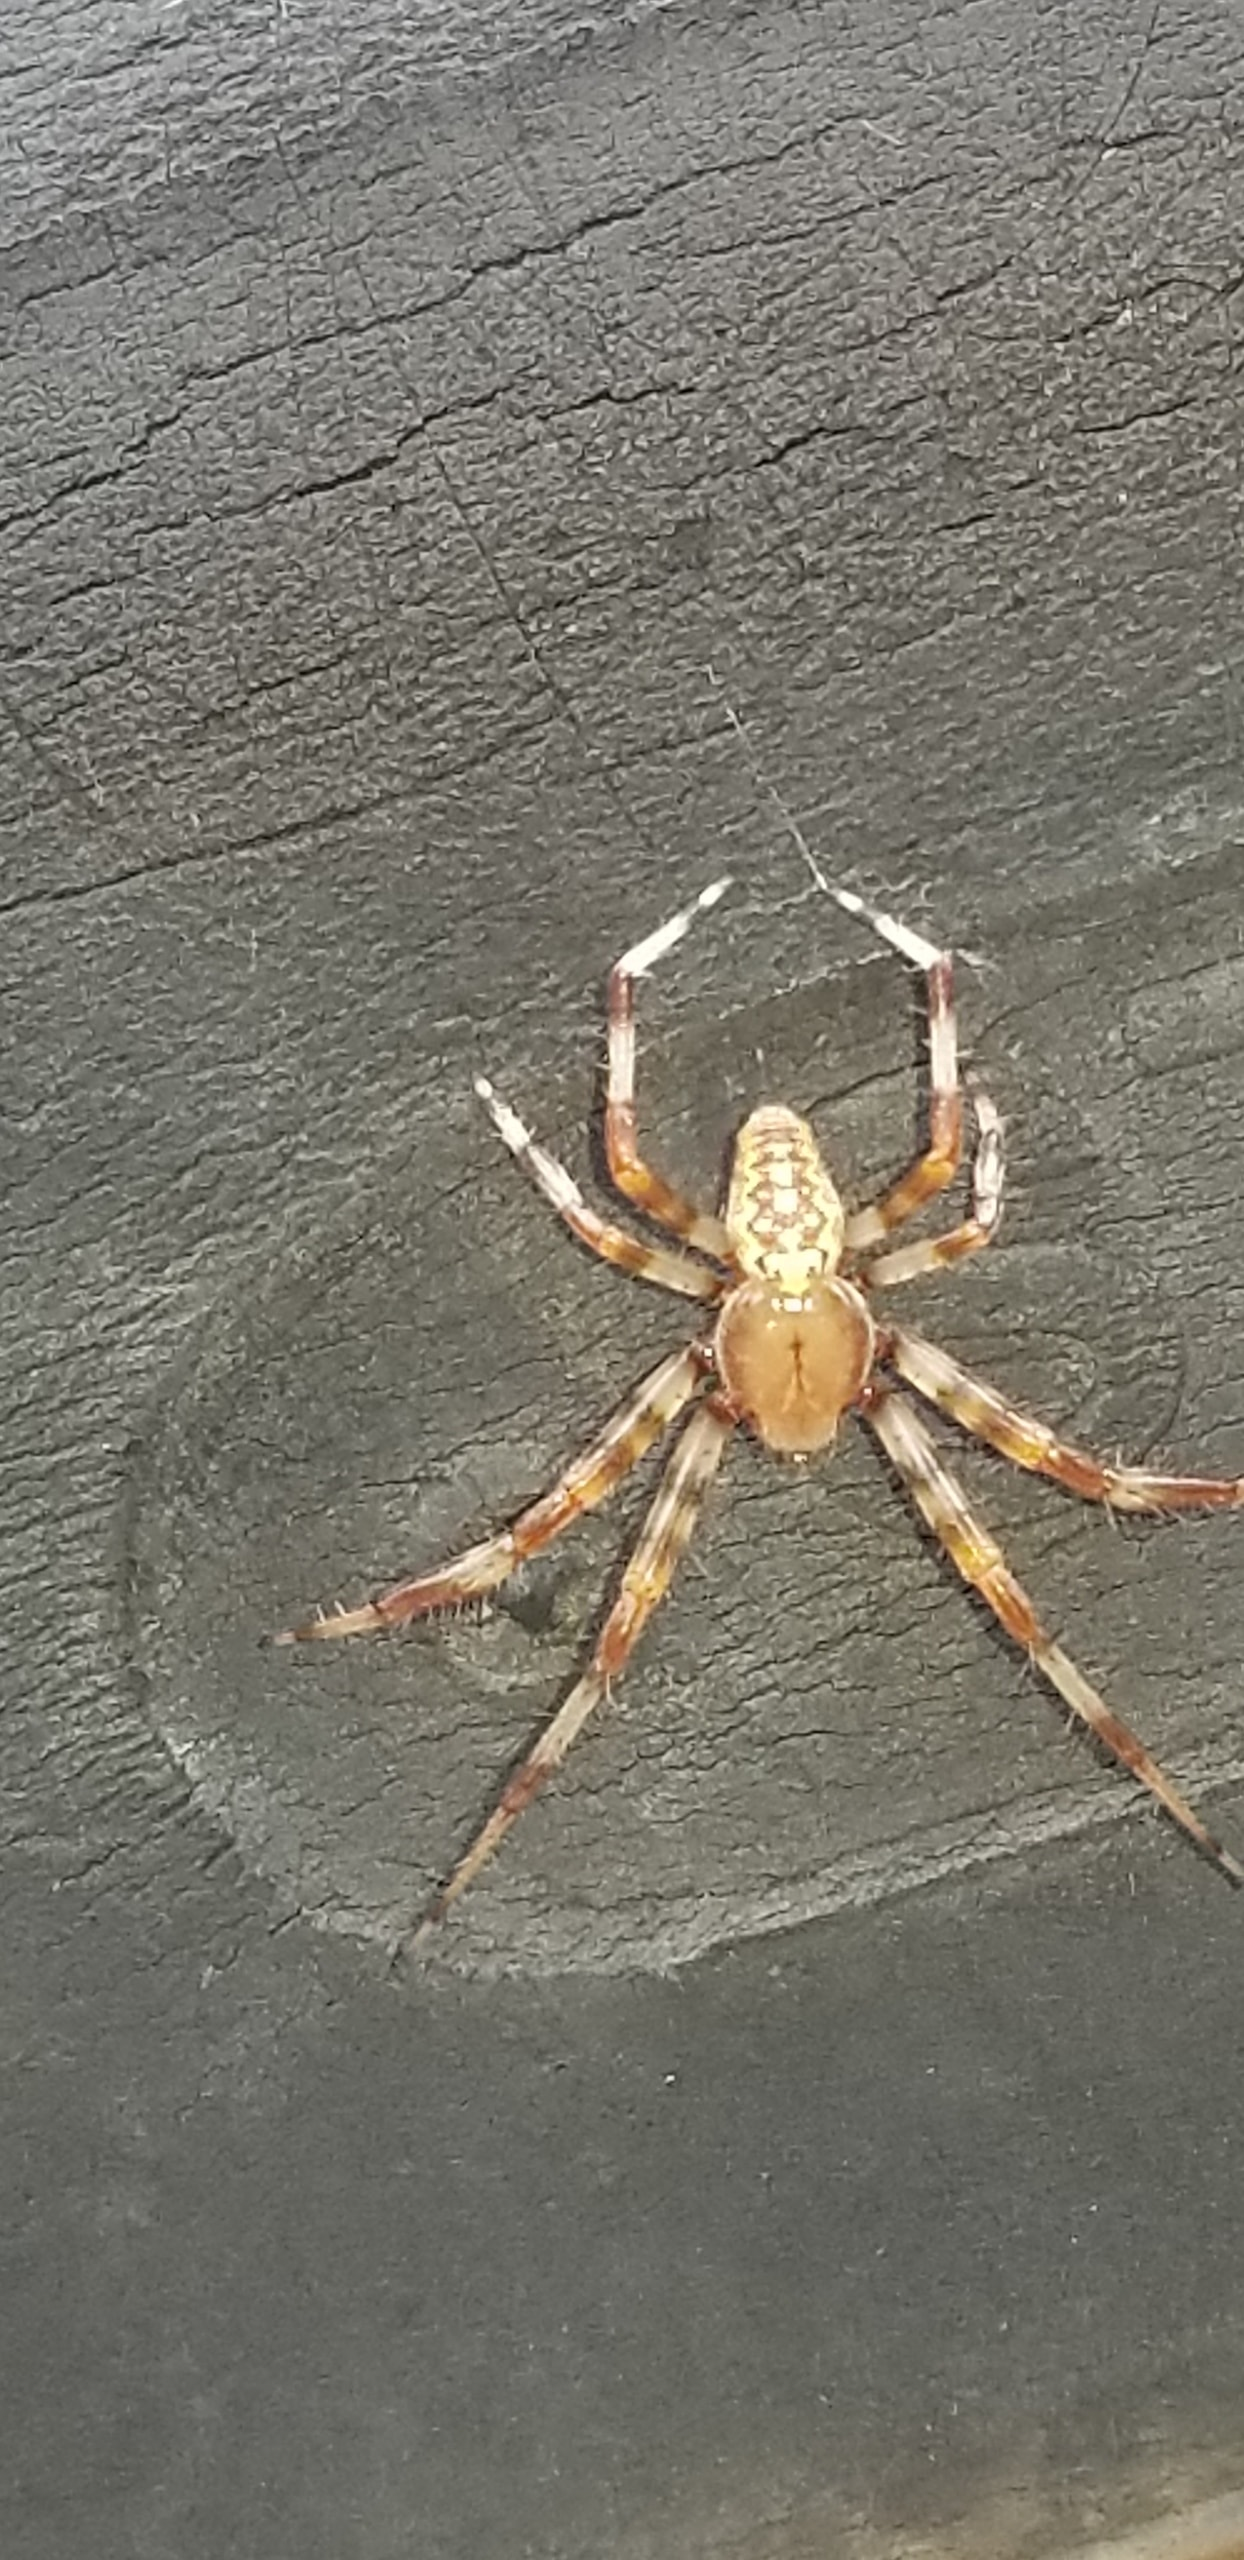 Picture of Araneus marmoreus (Marbled Orb-weaver) - Male - Dorsal